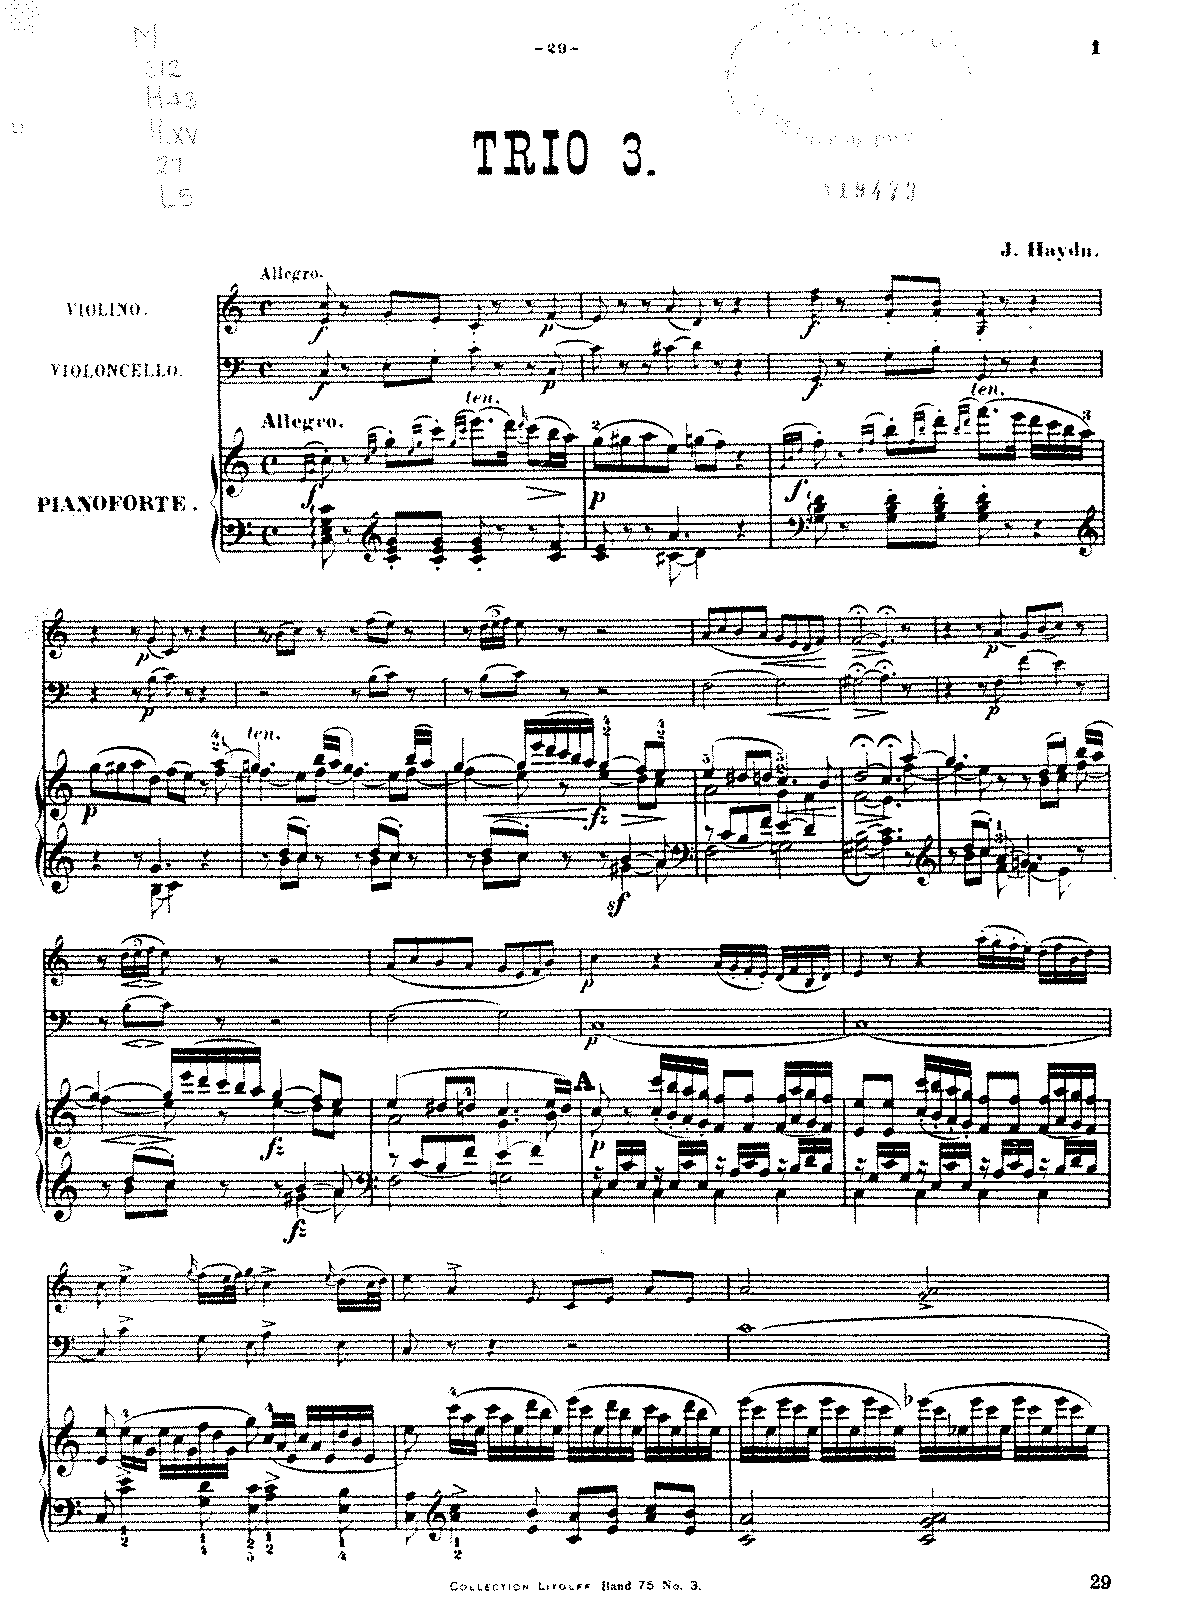 PMLP118678-Haydn - Piano Trio XV27 PS.pdf